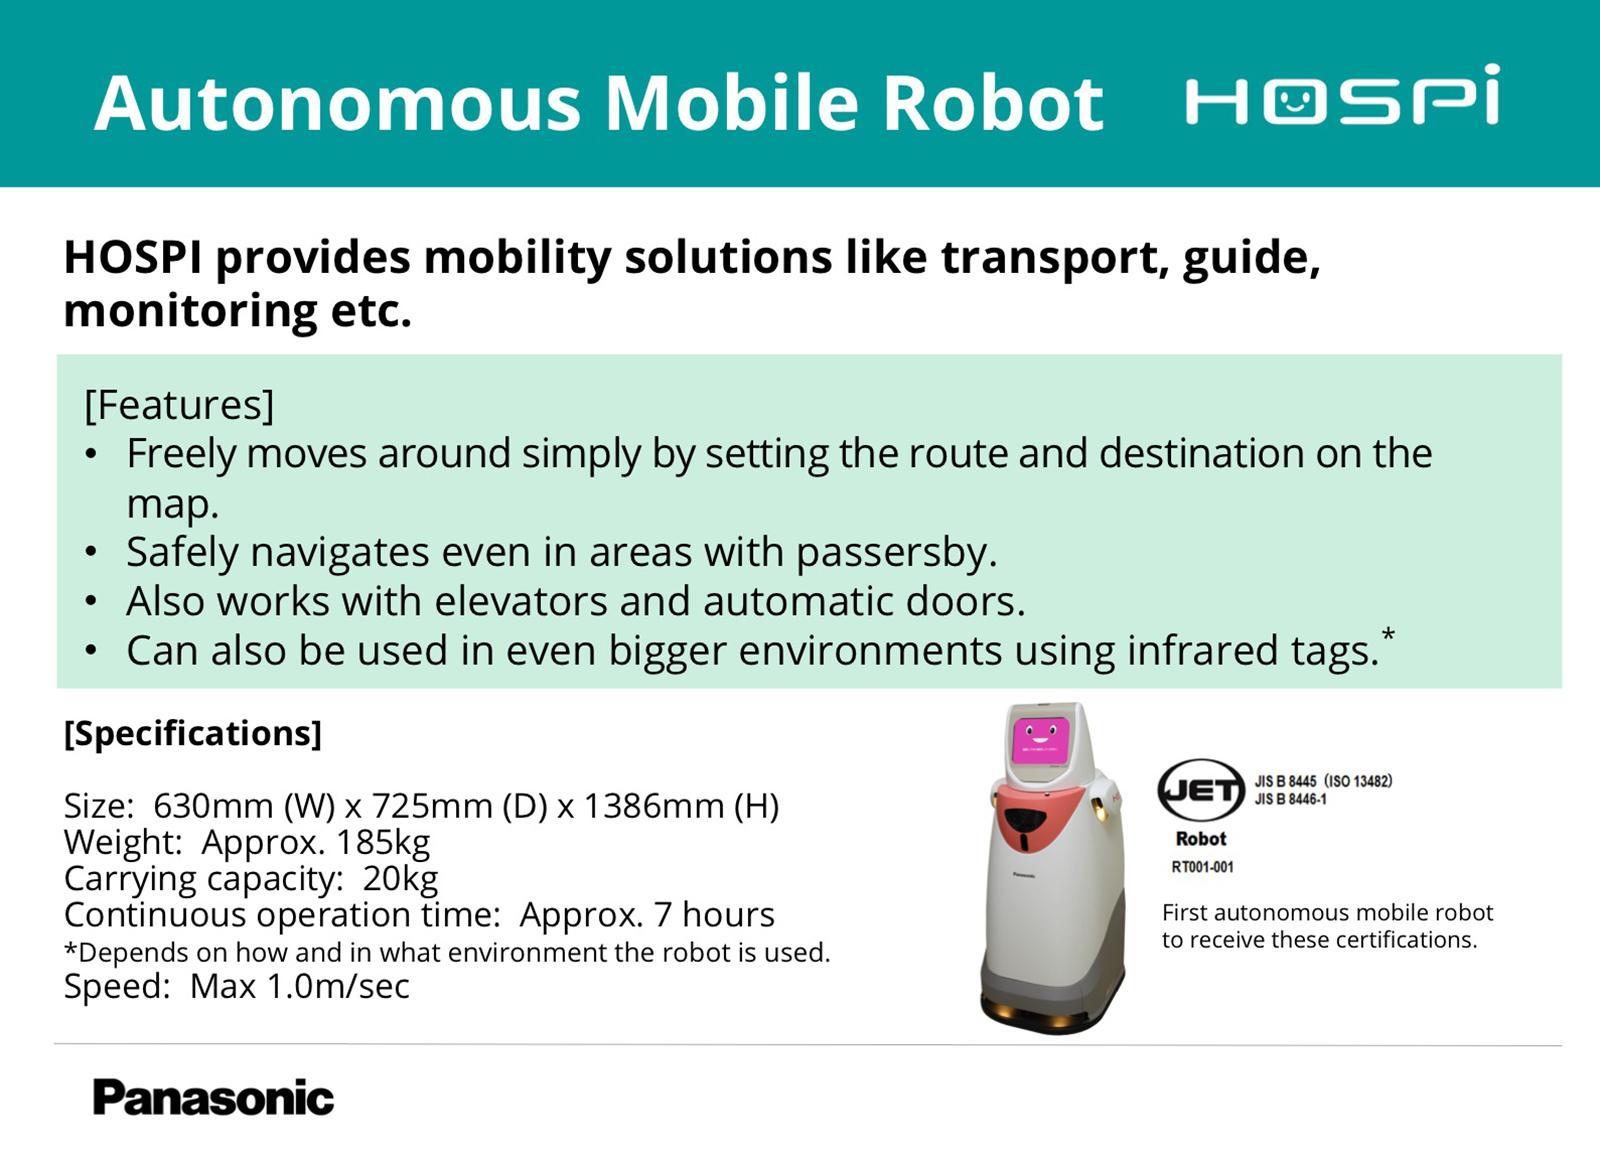 photo: Autonomous Mobile Robot HOSPI